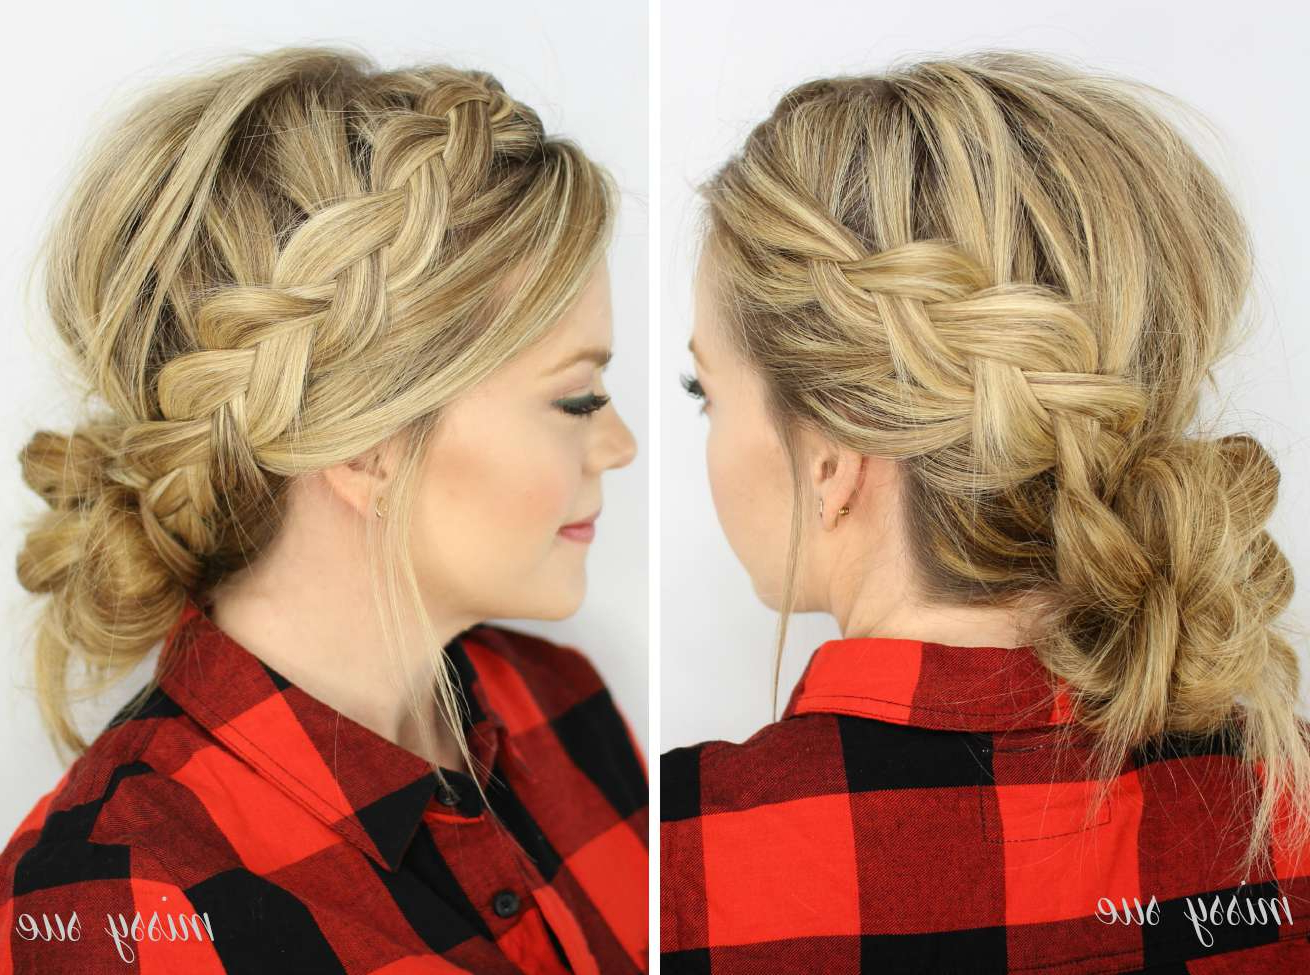 Most Recent Messy Mermaid Braid Hairstyles Within Braided Hairstyles For Weddings (View 19 of 20)